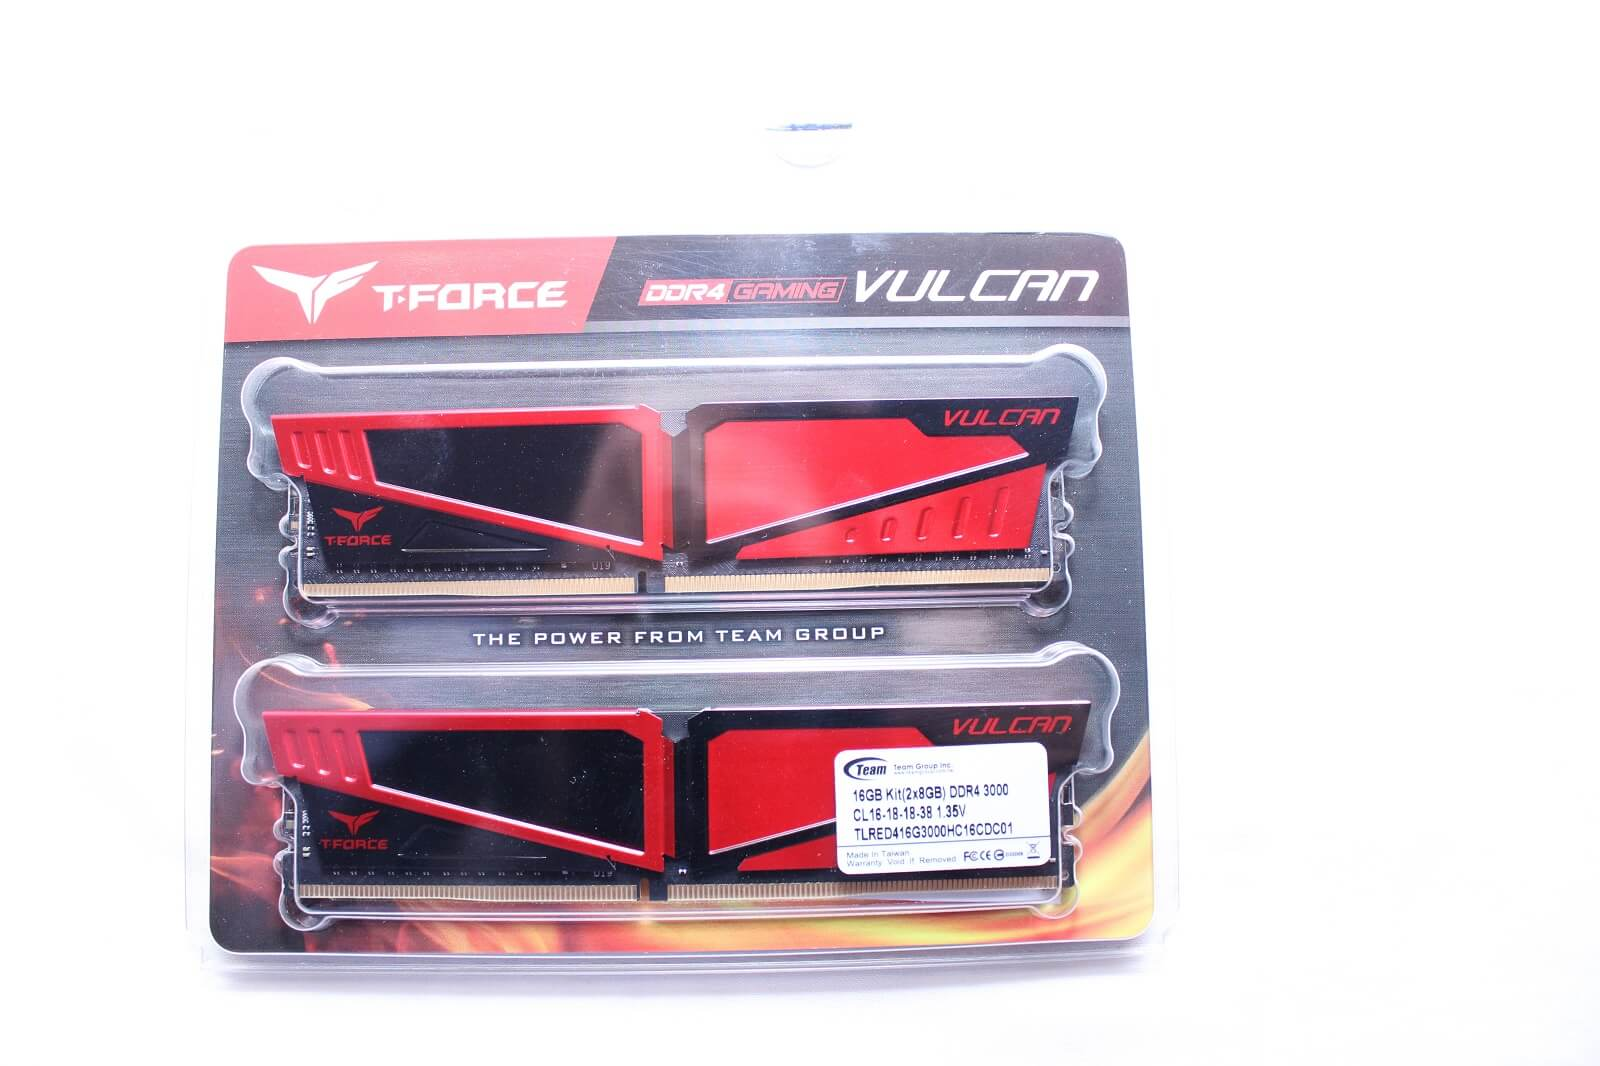 TeamGroup T-Force Vulcan DDR4 3000MHz CL16 RAM Review